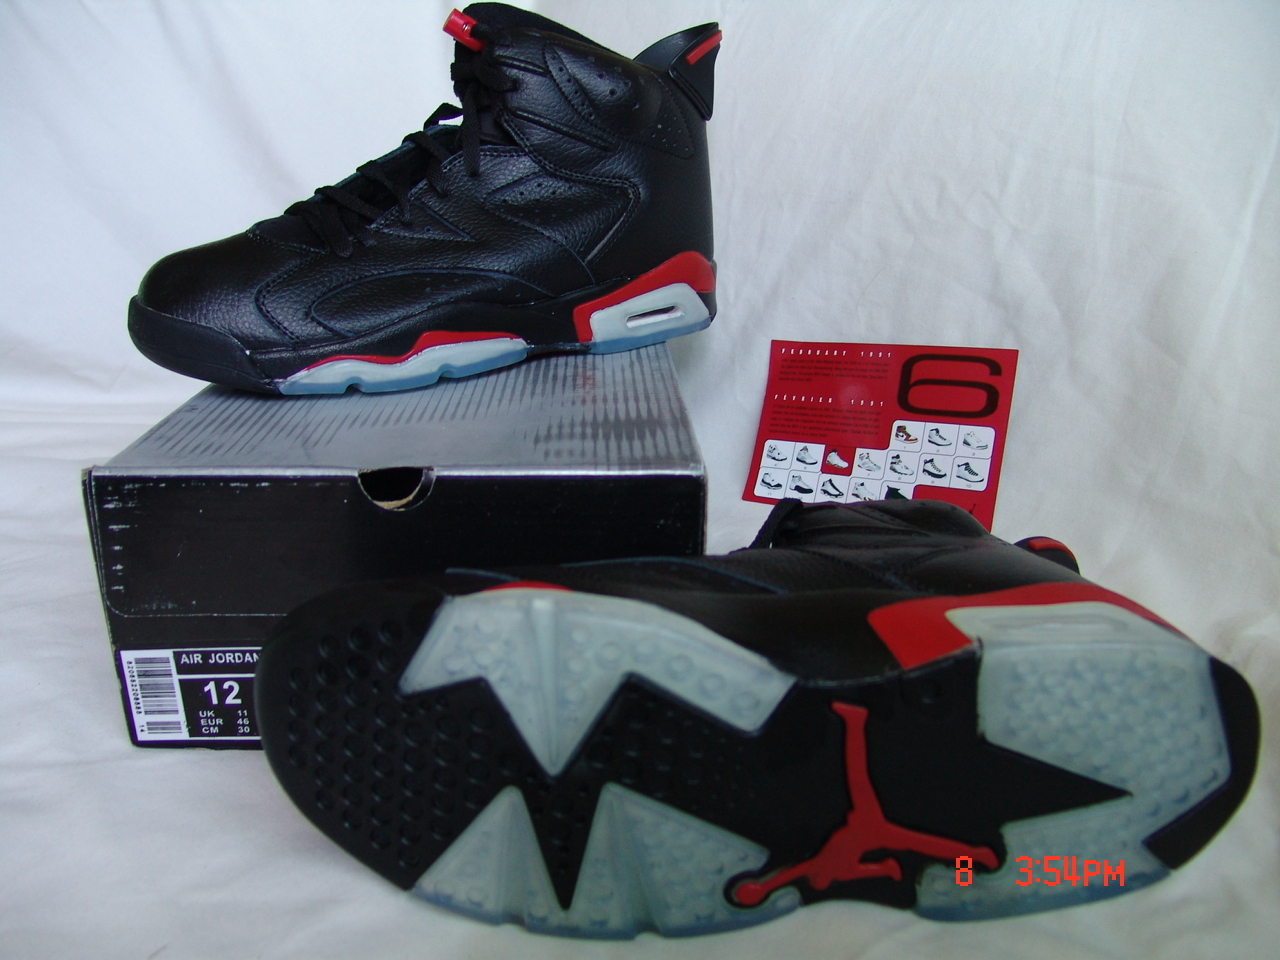 online store 1577f f3f2f Dsc00323. Dsc00323. 2000 Nike Air Jordan VI Retro Black VARSITY Fire Red  Bred White Shoes Size 12